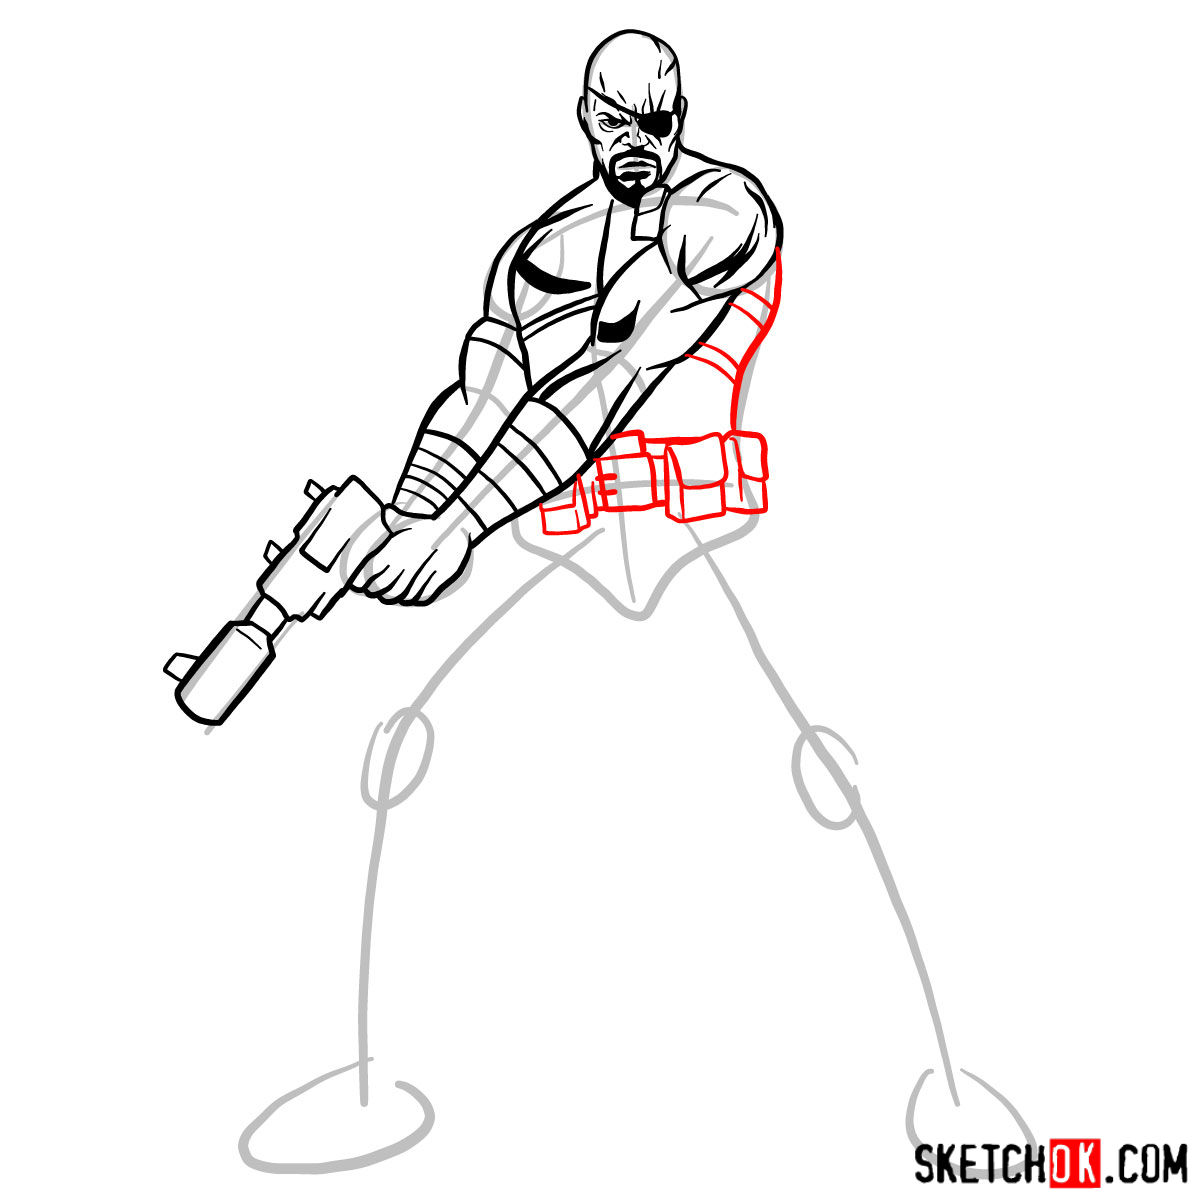 How to draw Nick Fury from the Avengers - step 10